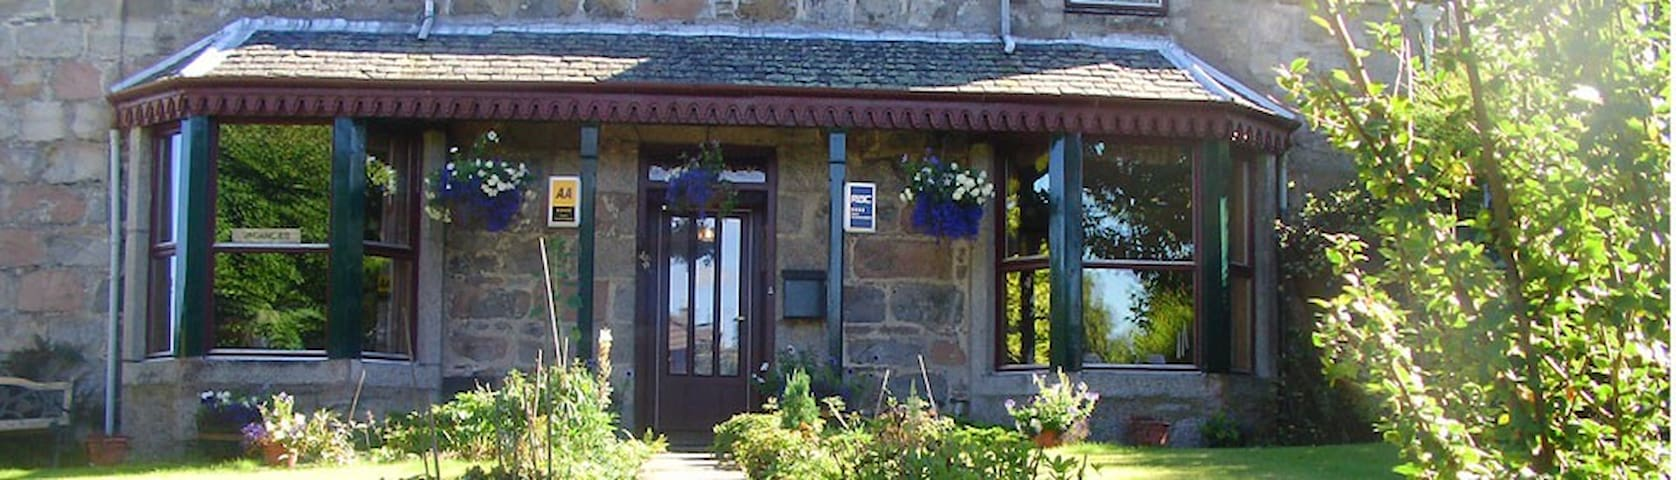 Garden Park Guest House - Grantown-on-Spey - Bed & Breakfast